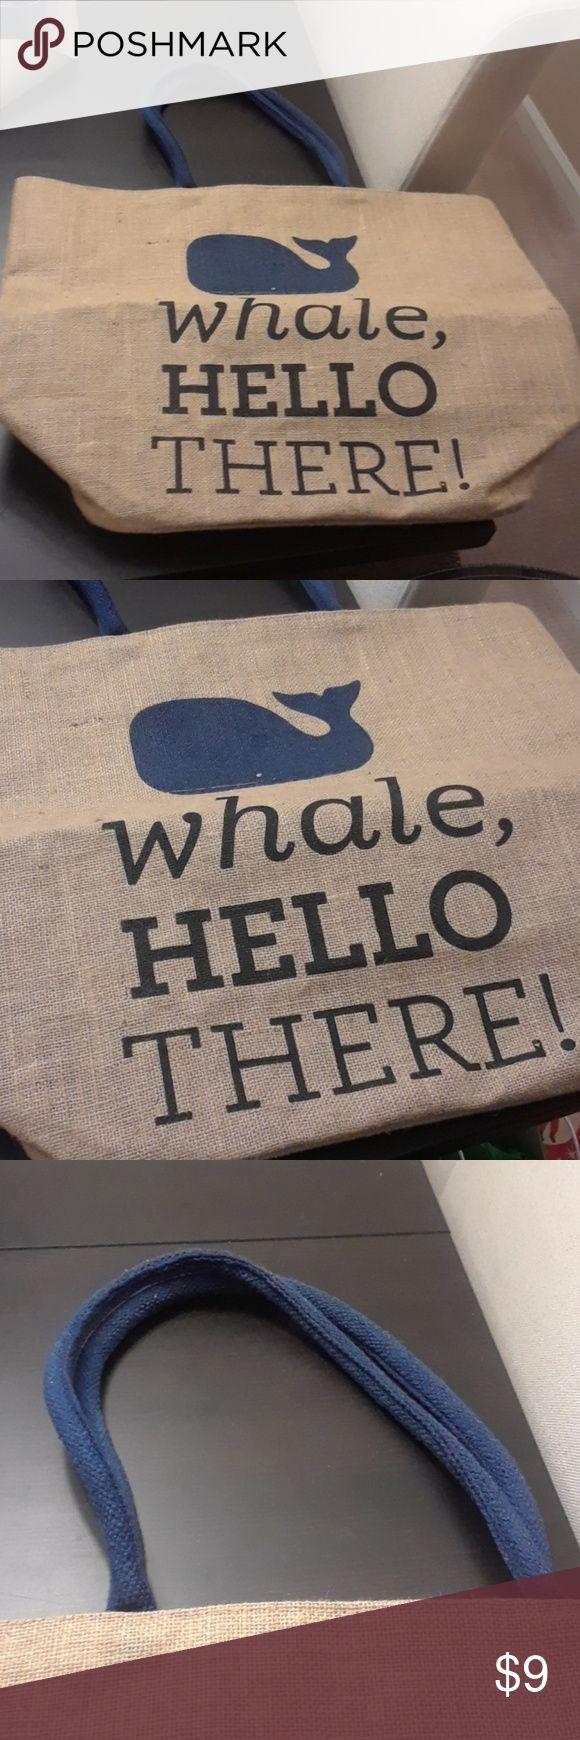 Brand new oversized beach bag Brand new oversized beach bag with whale design, approximately 21 inches wide, 18 inches tall Bags Totes